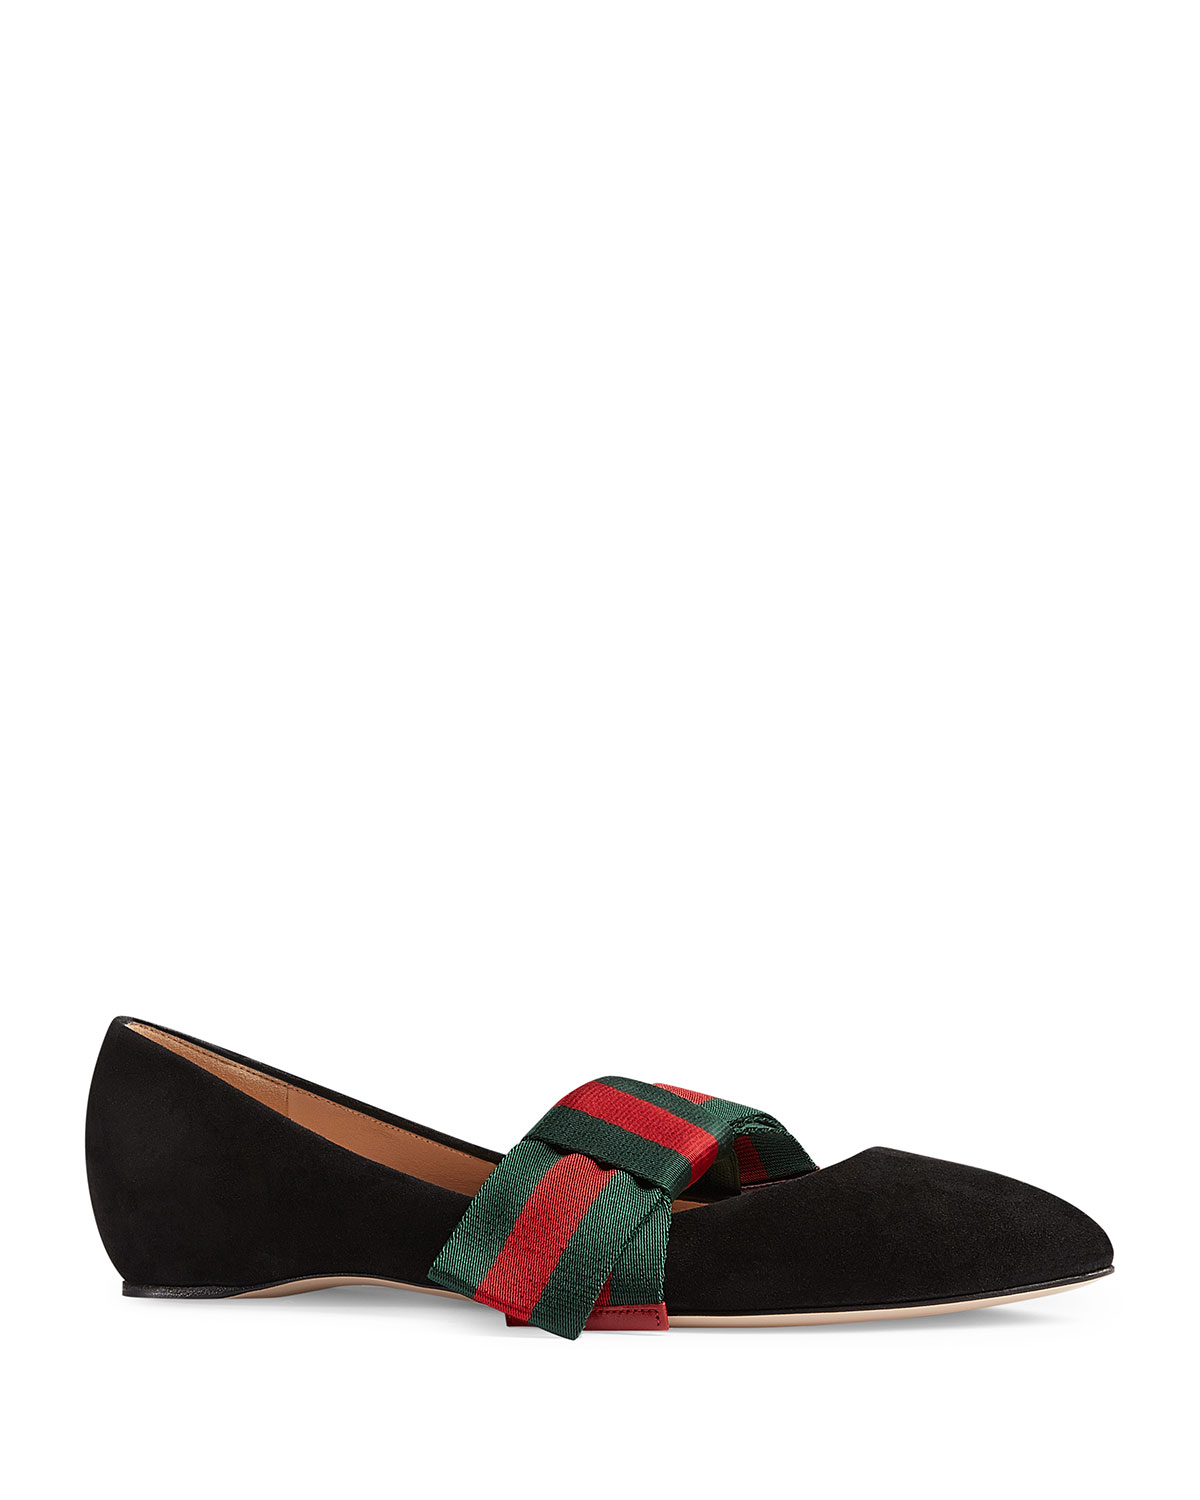 a435c2b06 Flat Black Gucci Shoes | Neiman Marcus